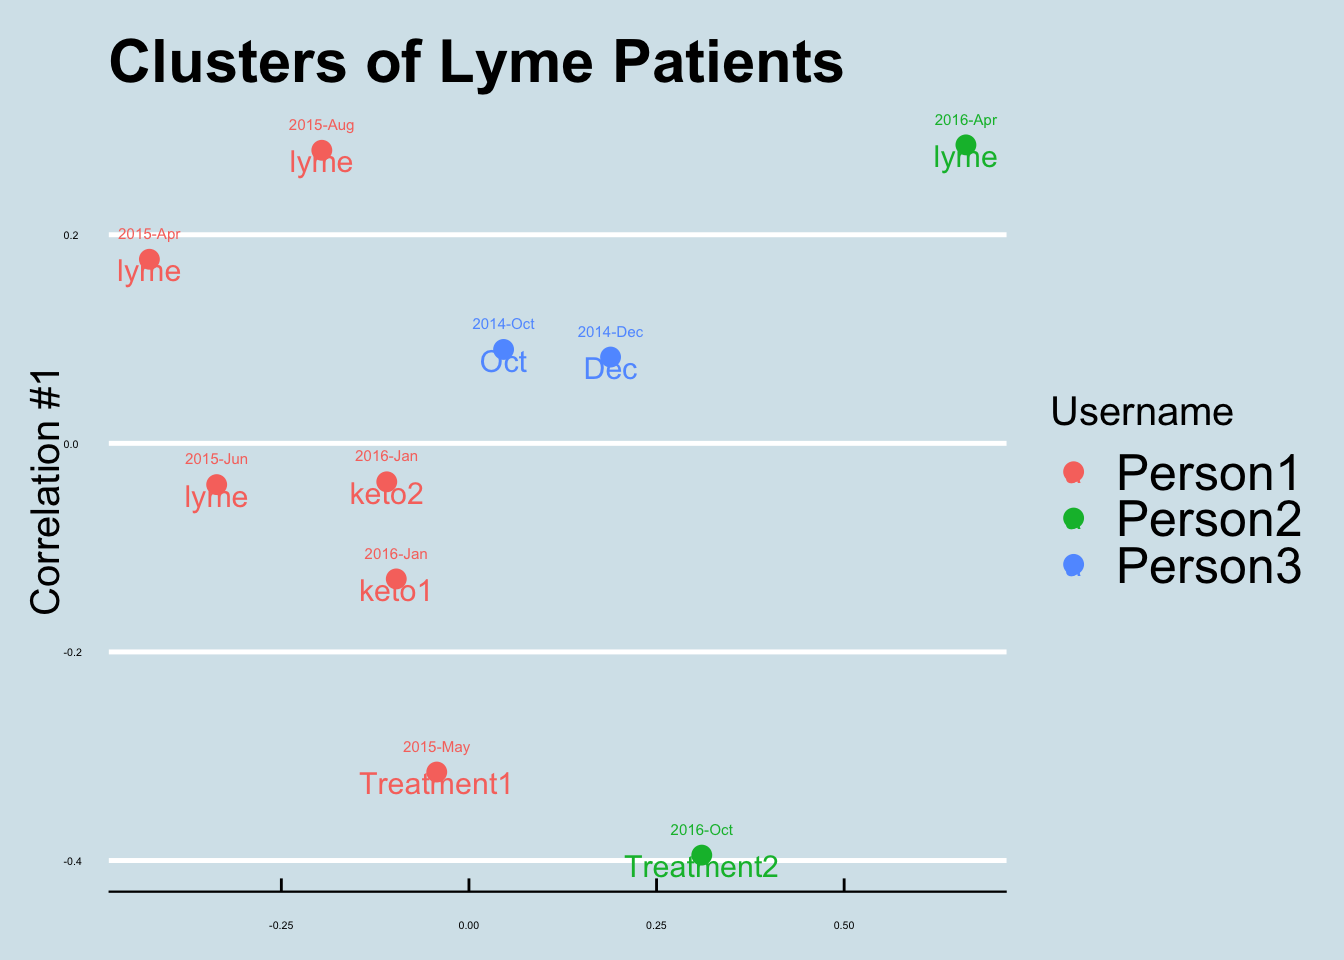 Clusters of lyme patients